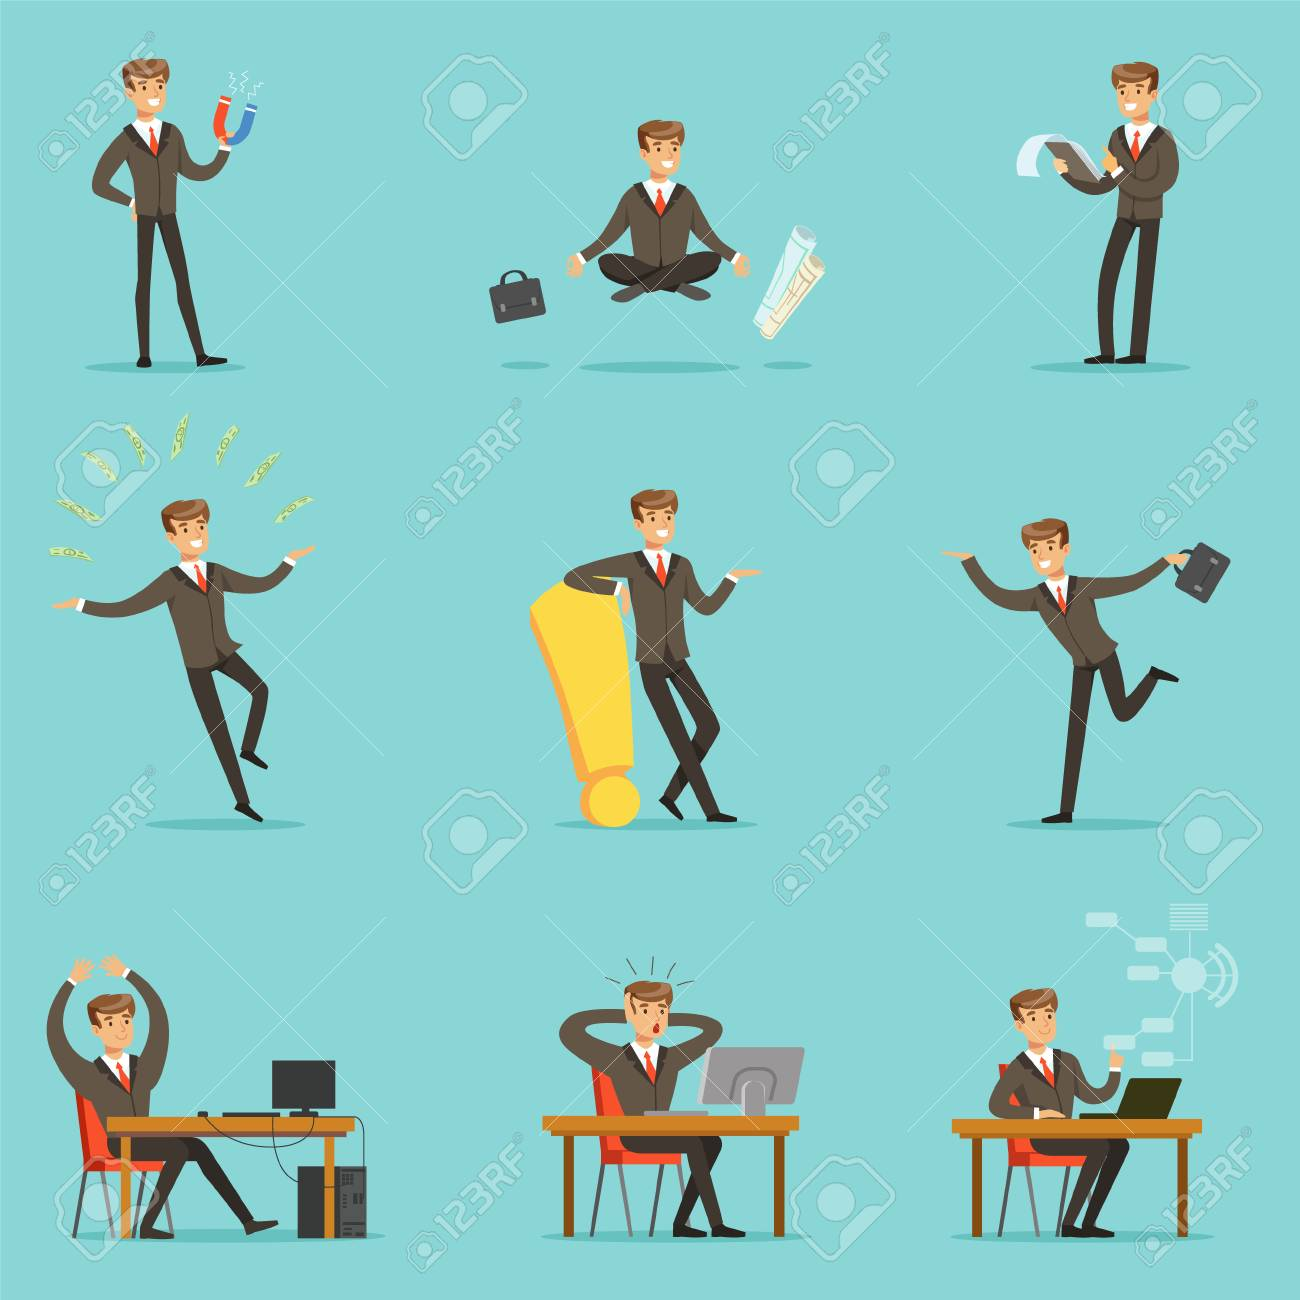 Businessman Work Process Series Of Business Related Scenes With Young Entrepreneur Cartoon Character - 70385193